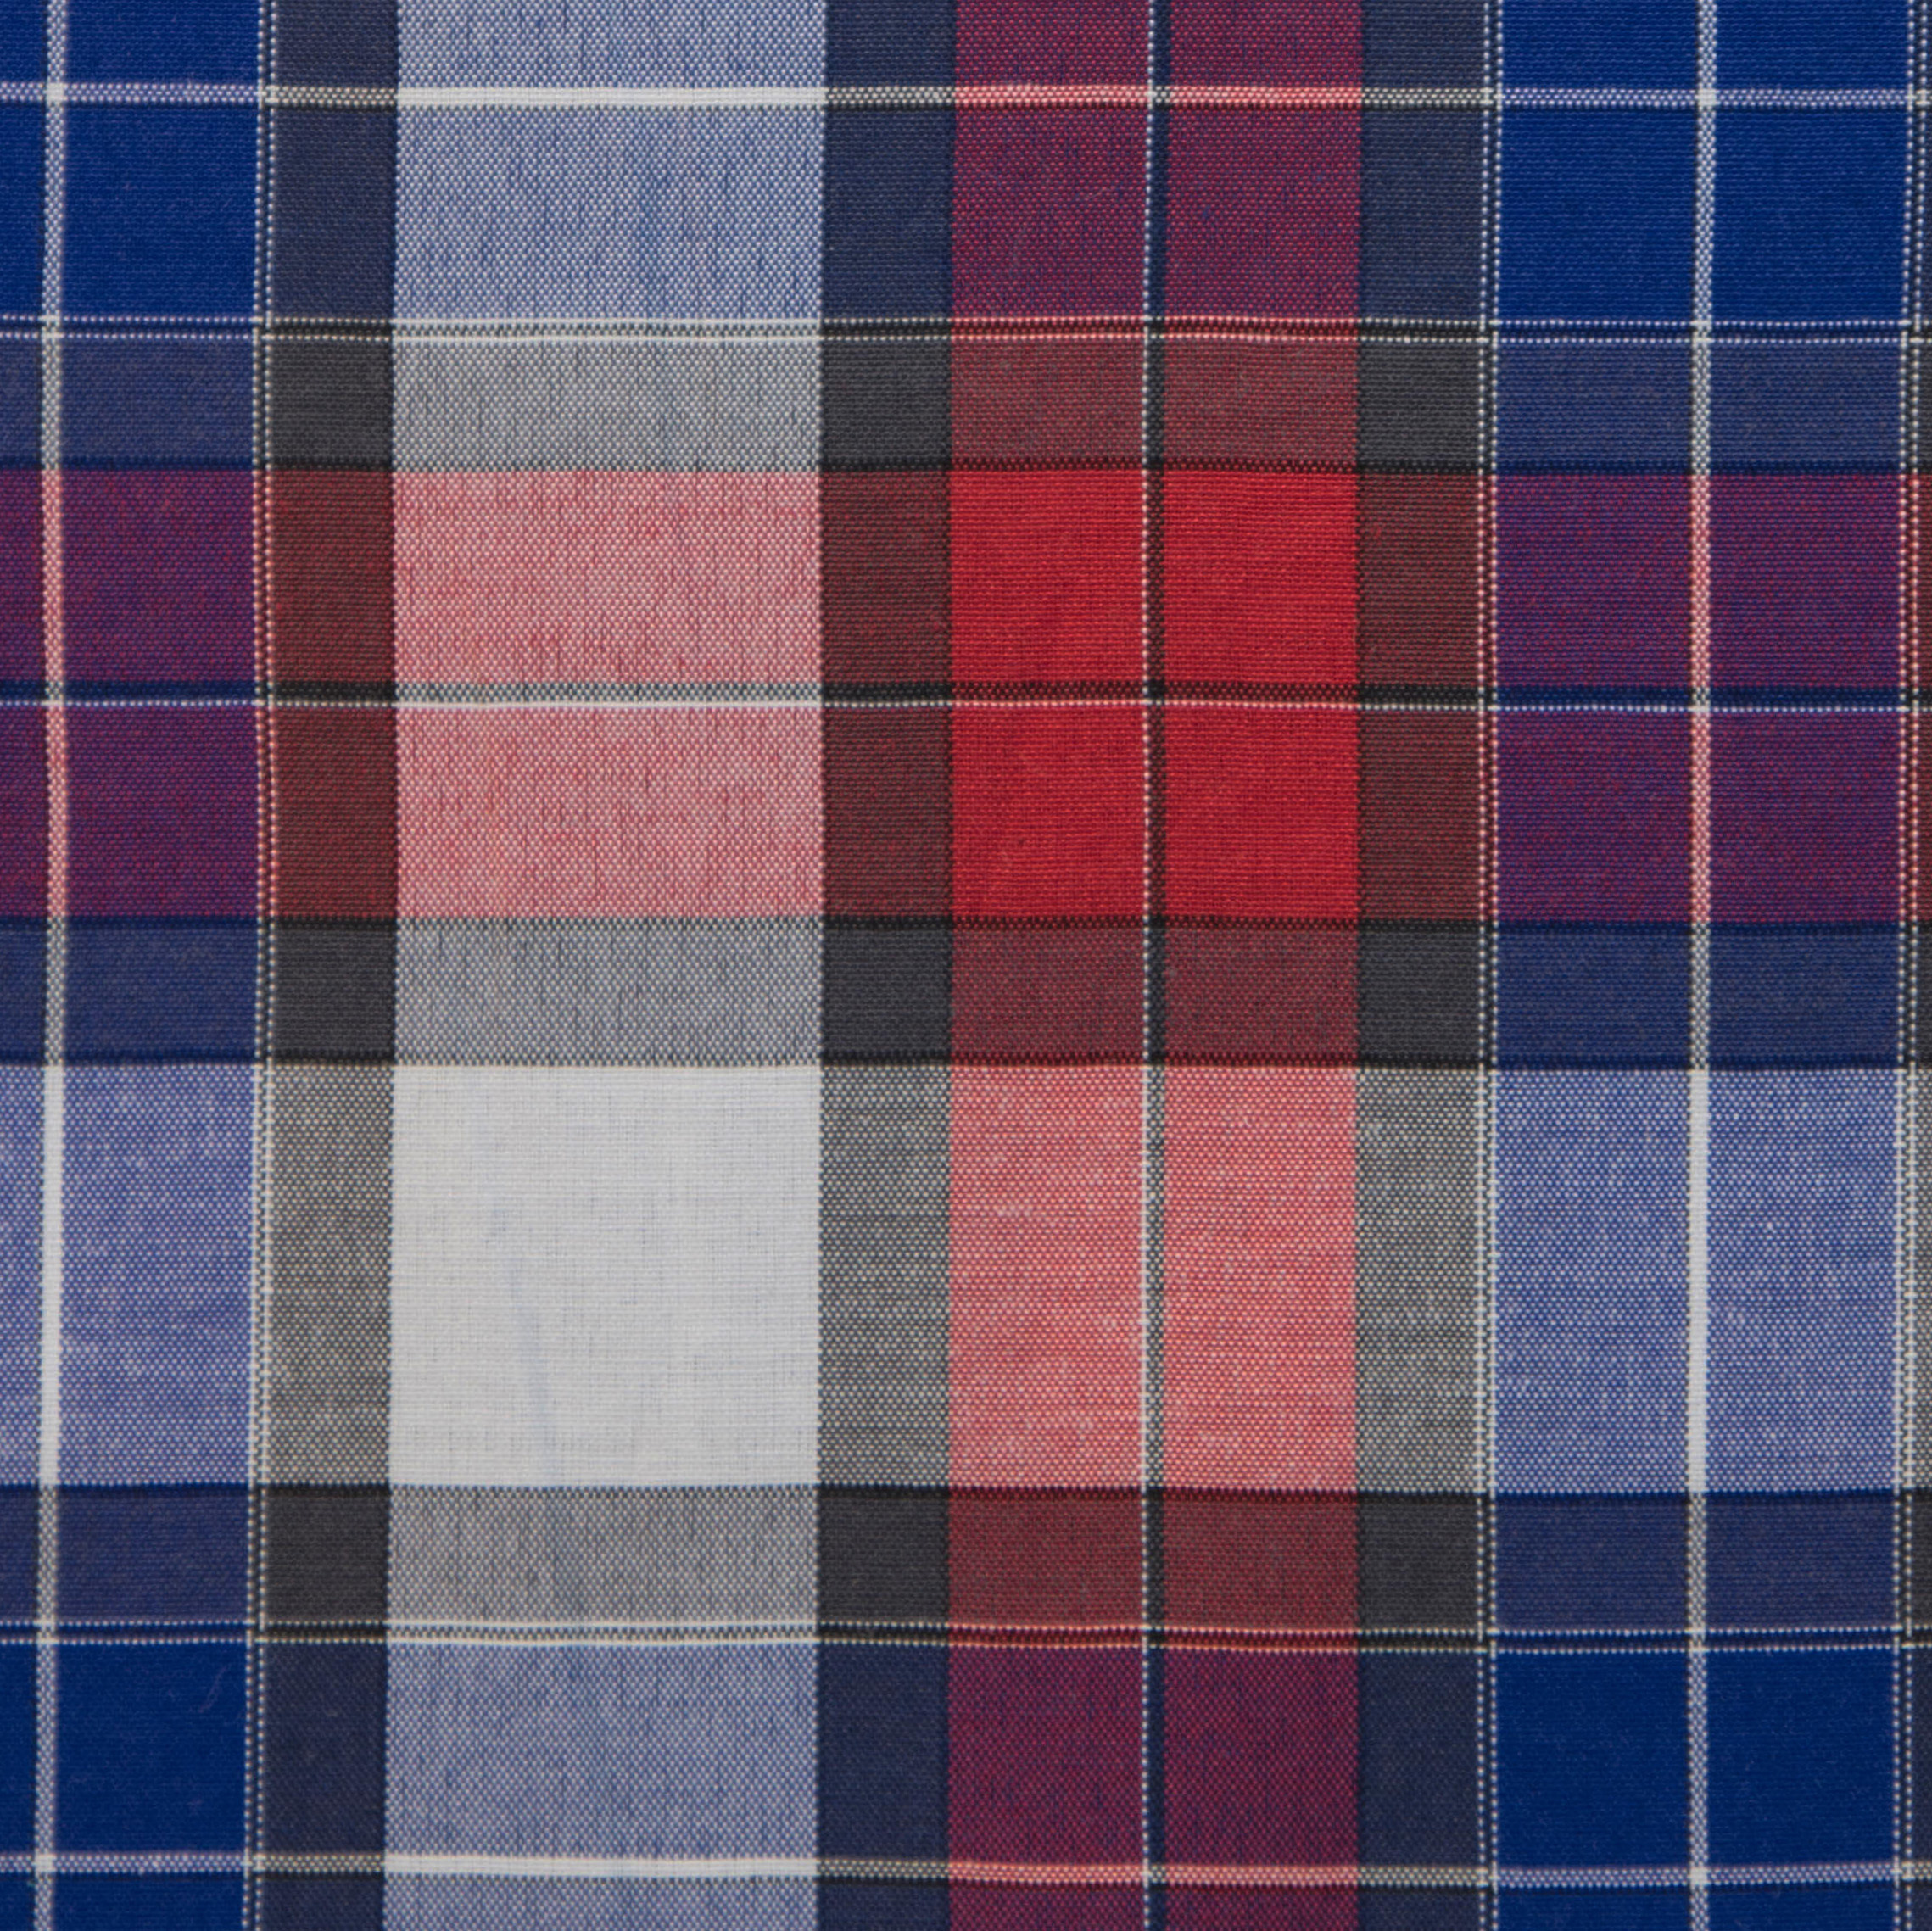 Buy tailor made shirts online - Texas Country Checks - Red, Blue, Black Check